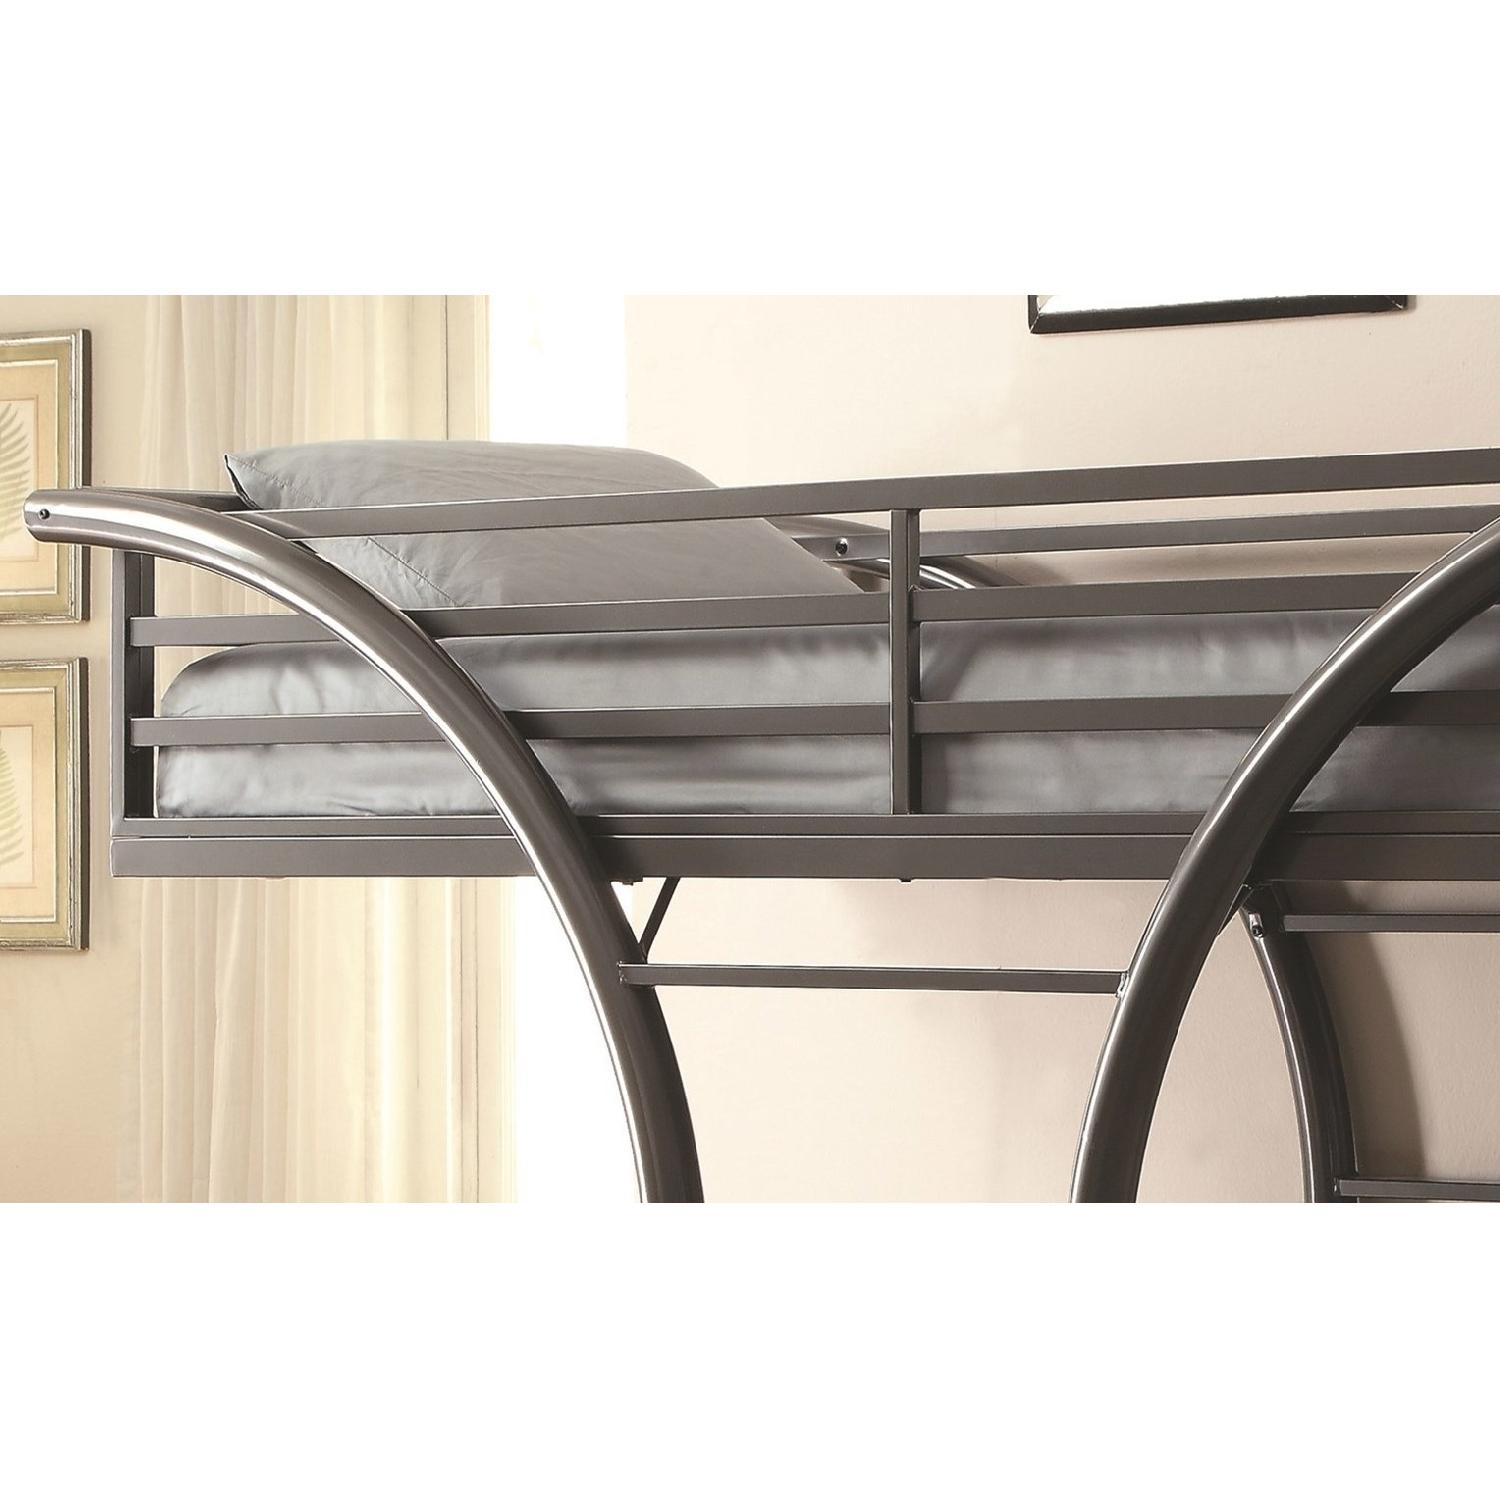 Twin Over Twin Steel Bunk Bed Finished in Gunmetal - image-2